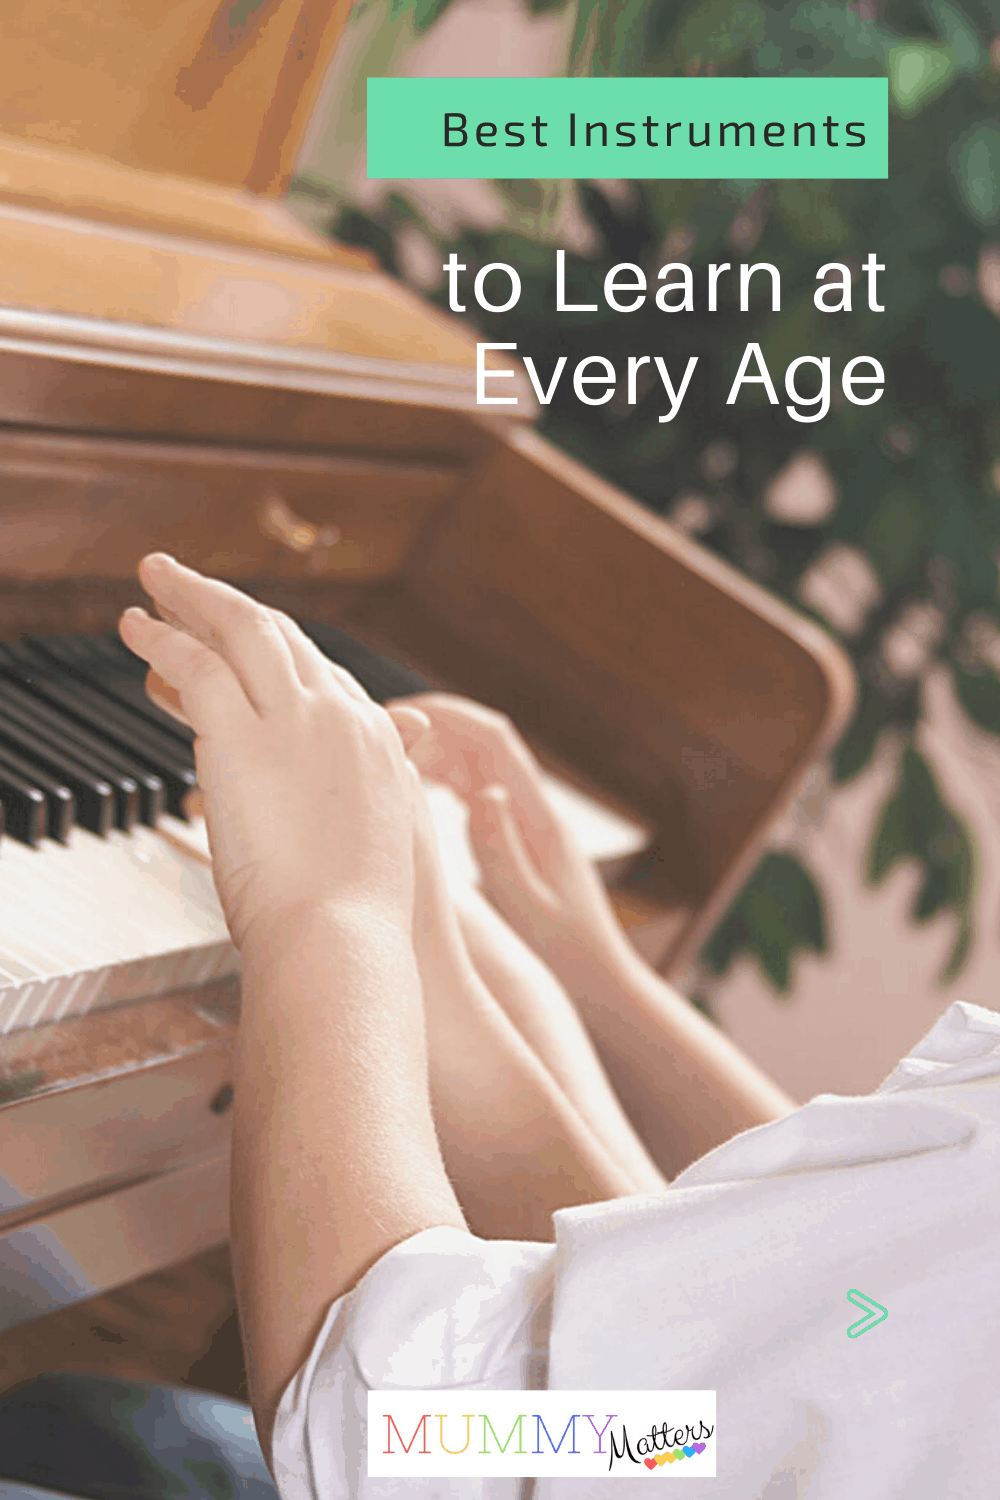 Best Instruments to Learn at Every Age 2